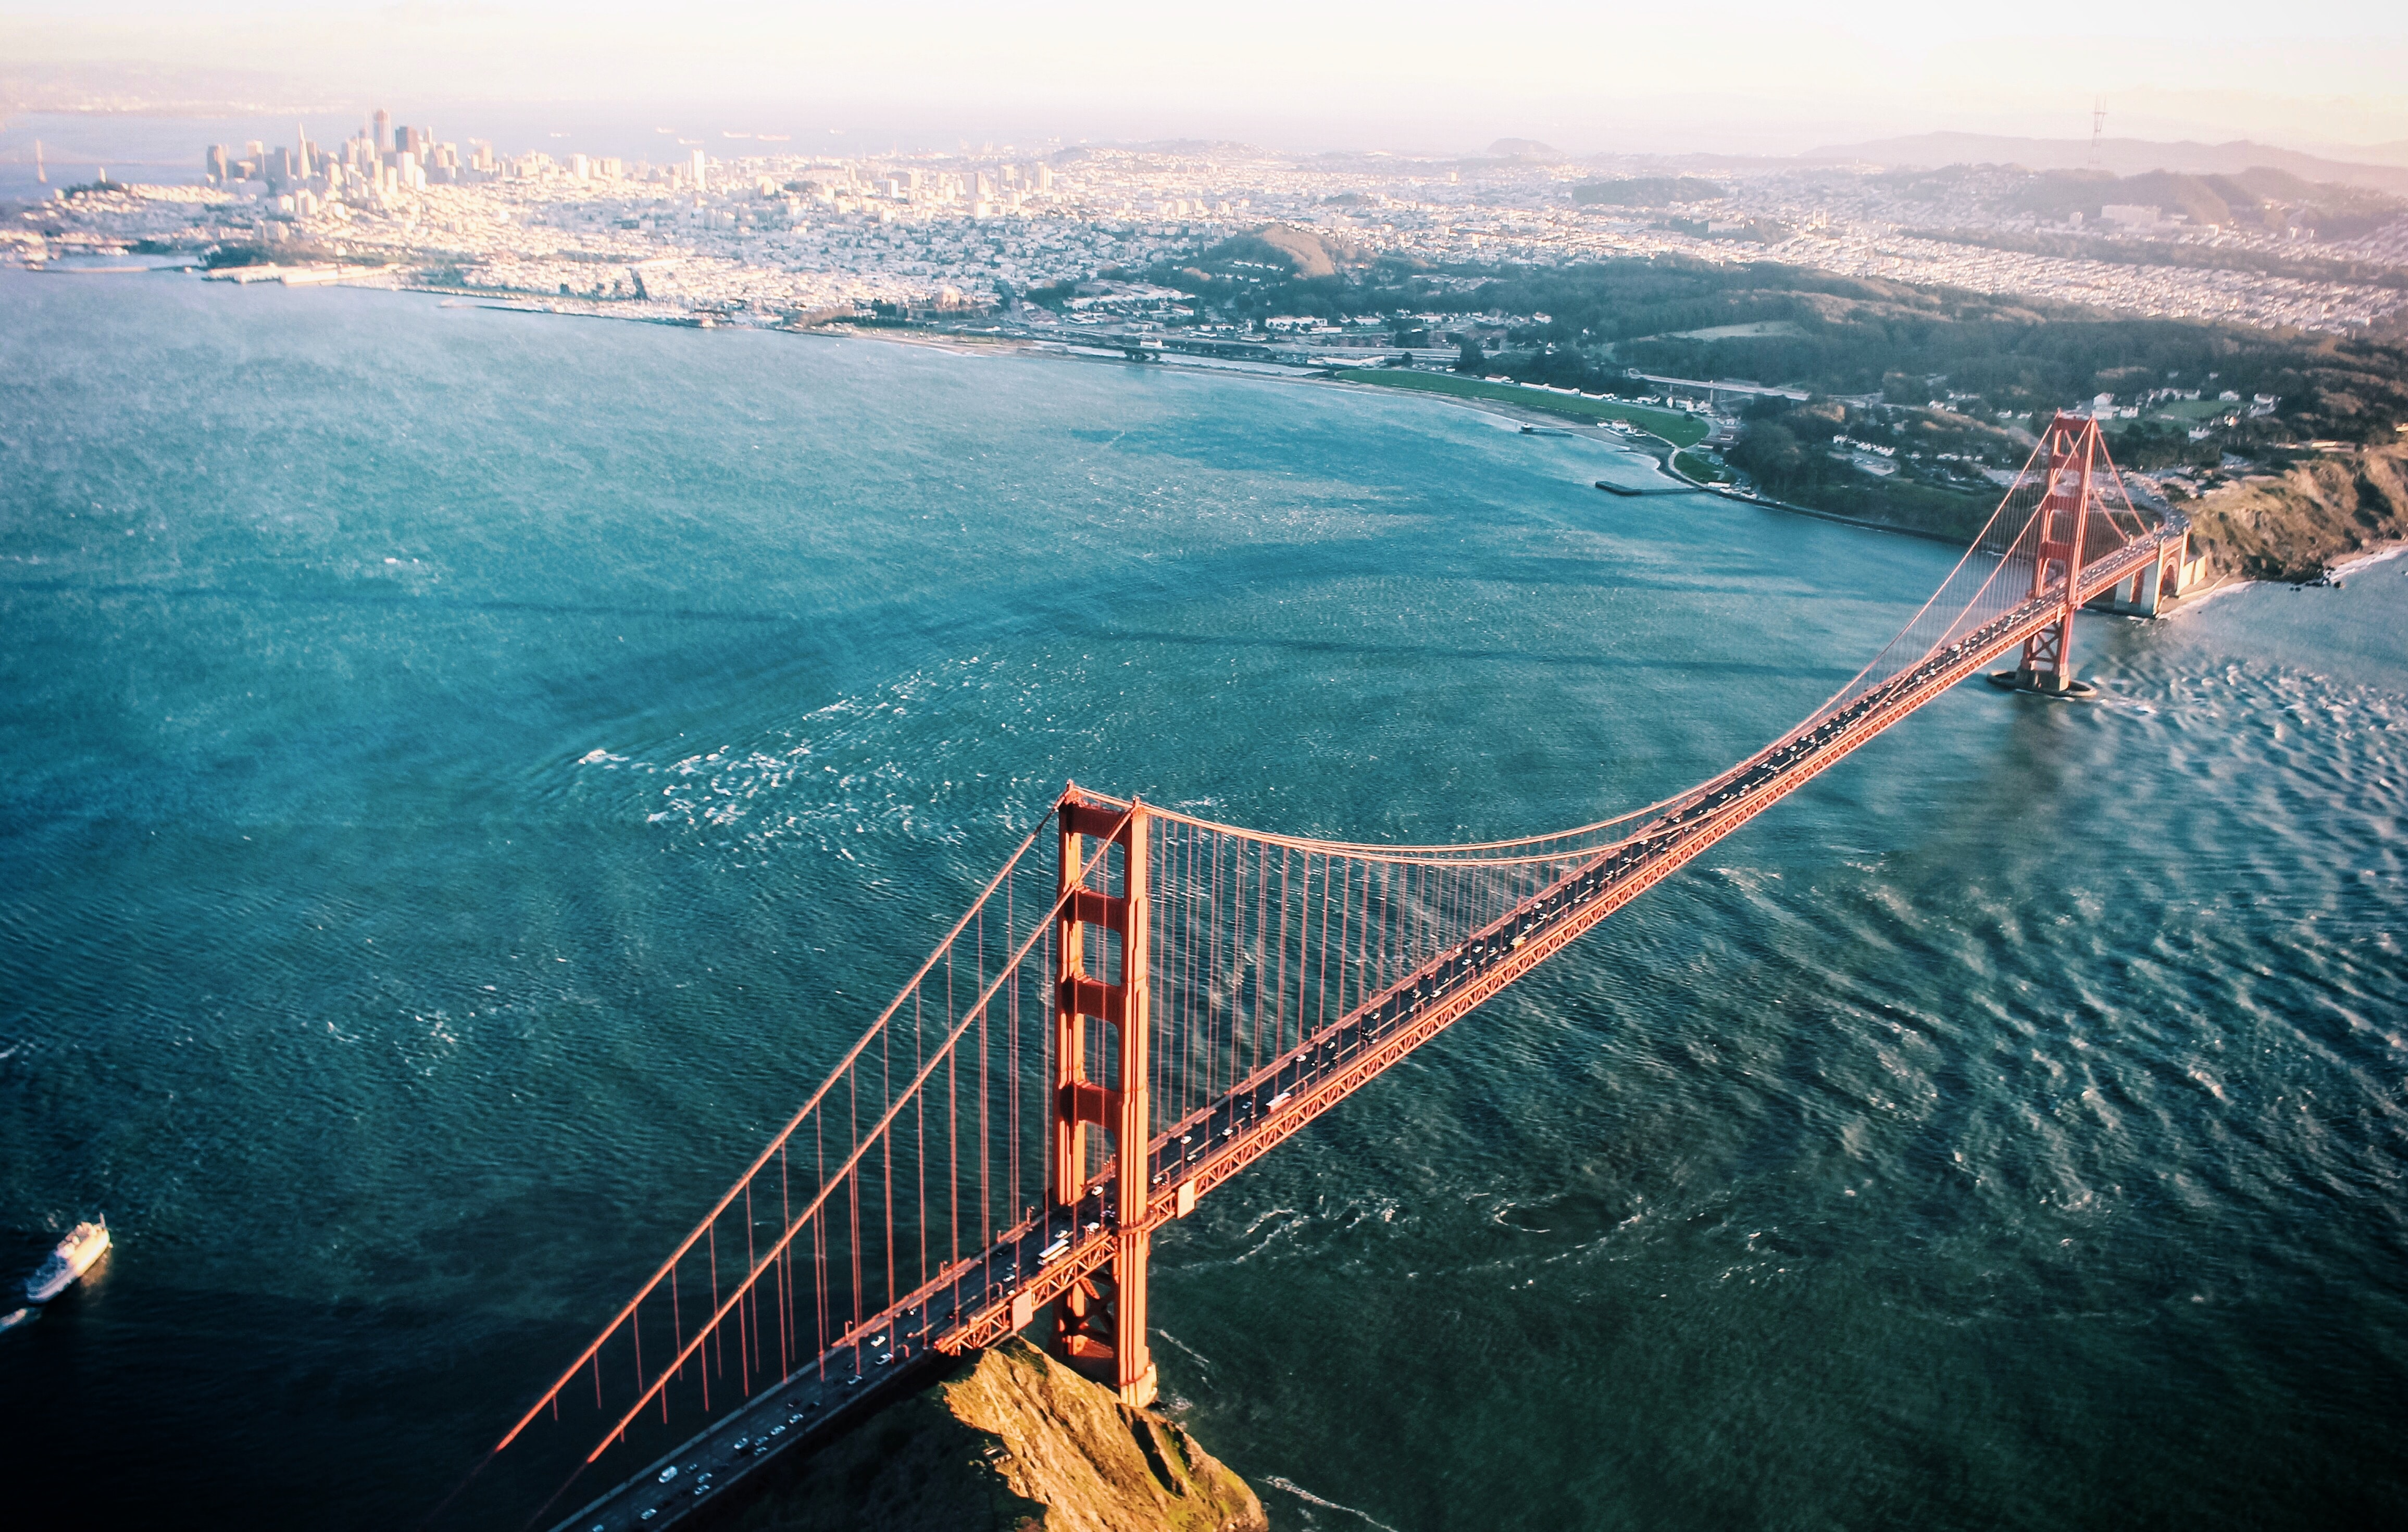 Drone view of San Francisco Golden Gate Bridge over crystal blue water and harbor in background